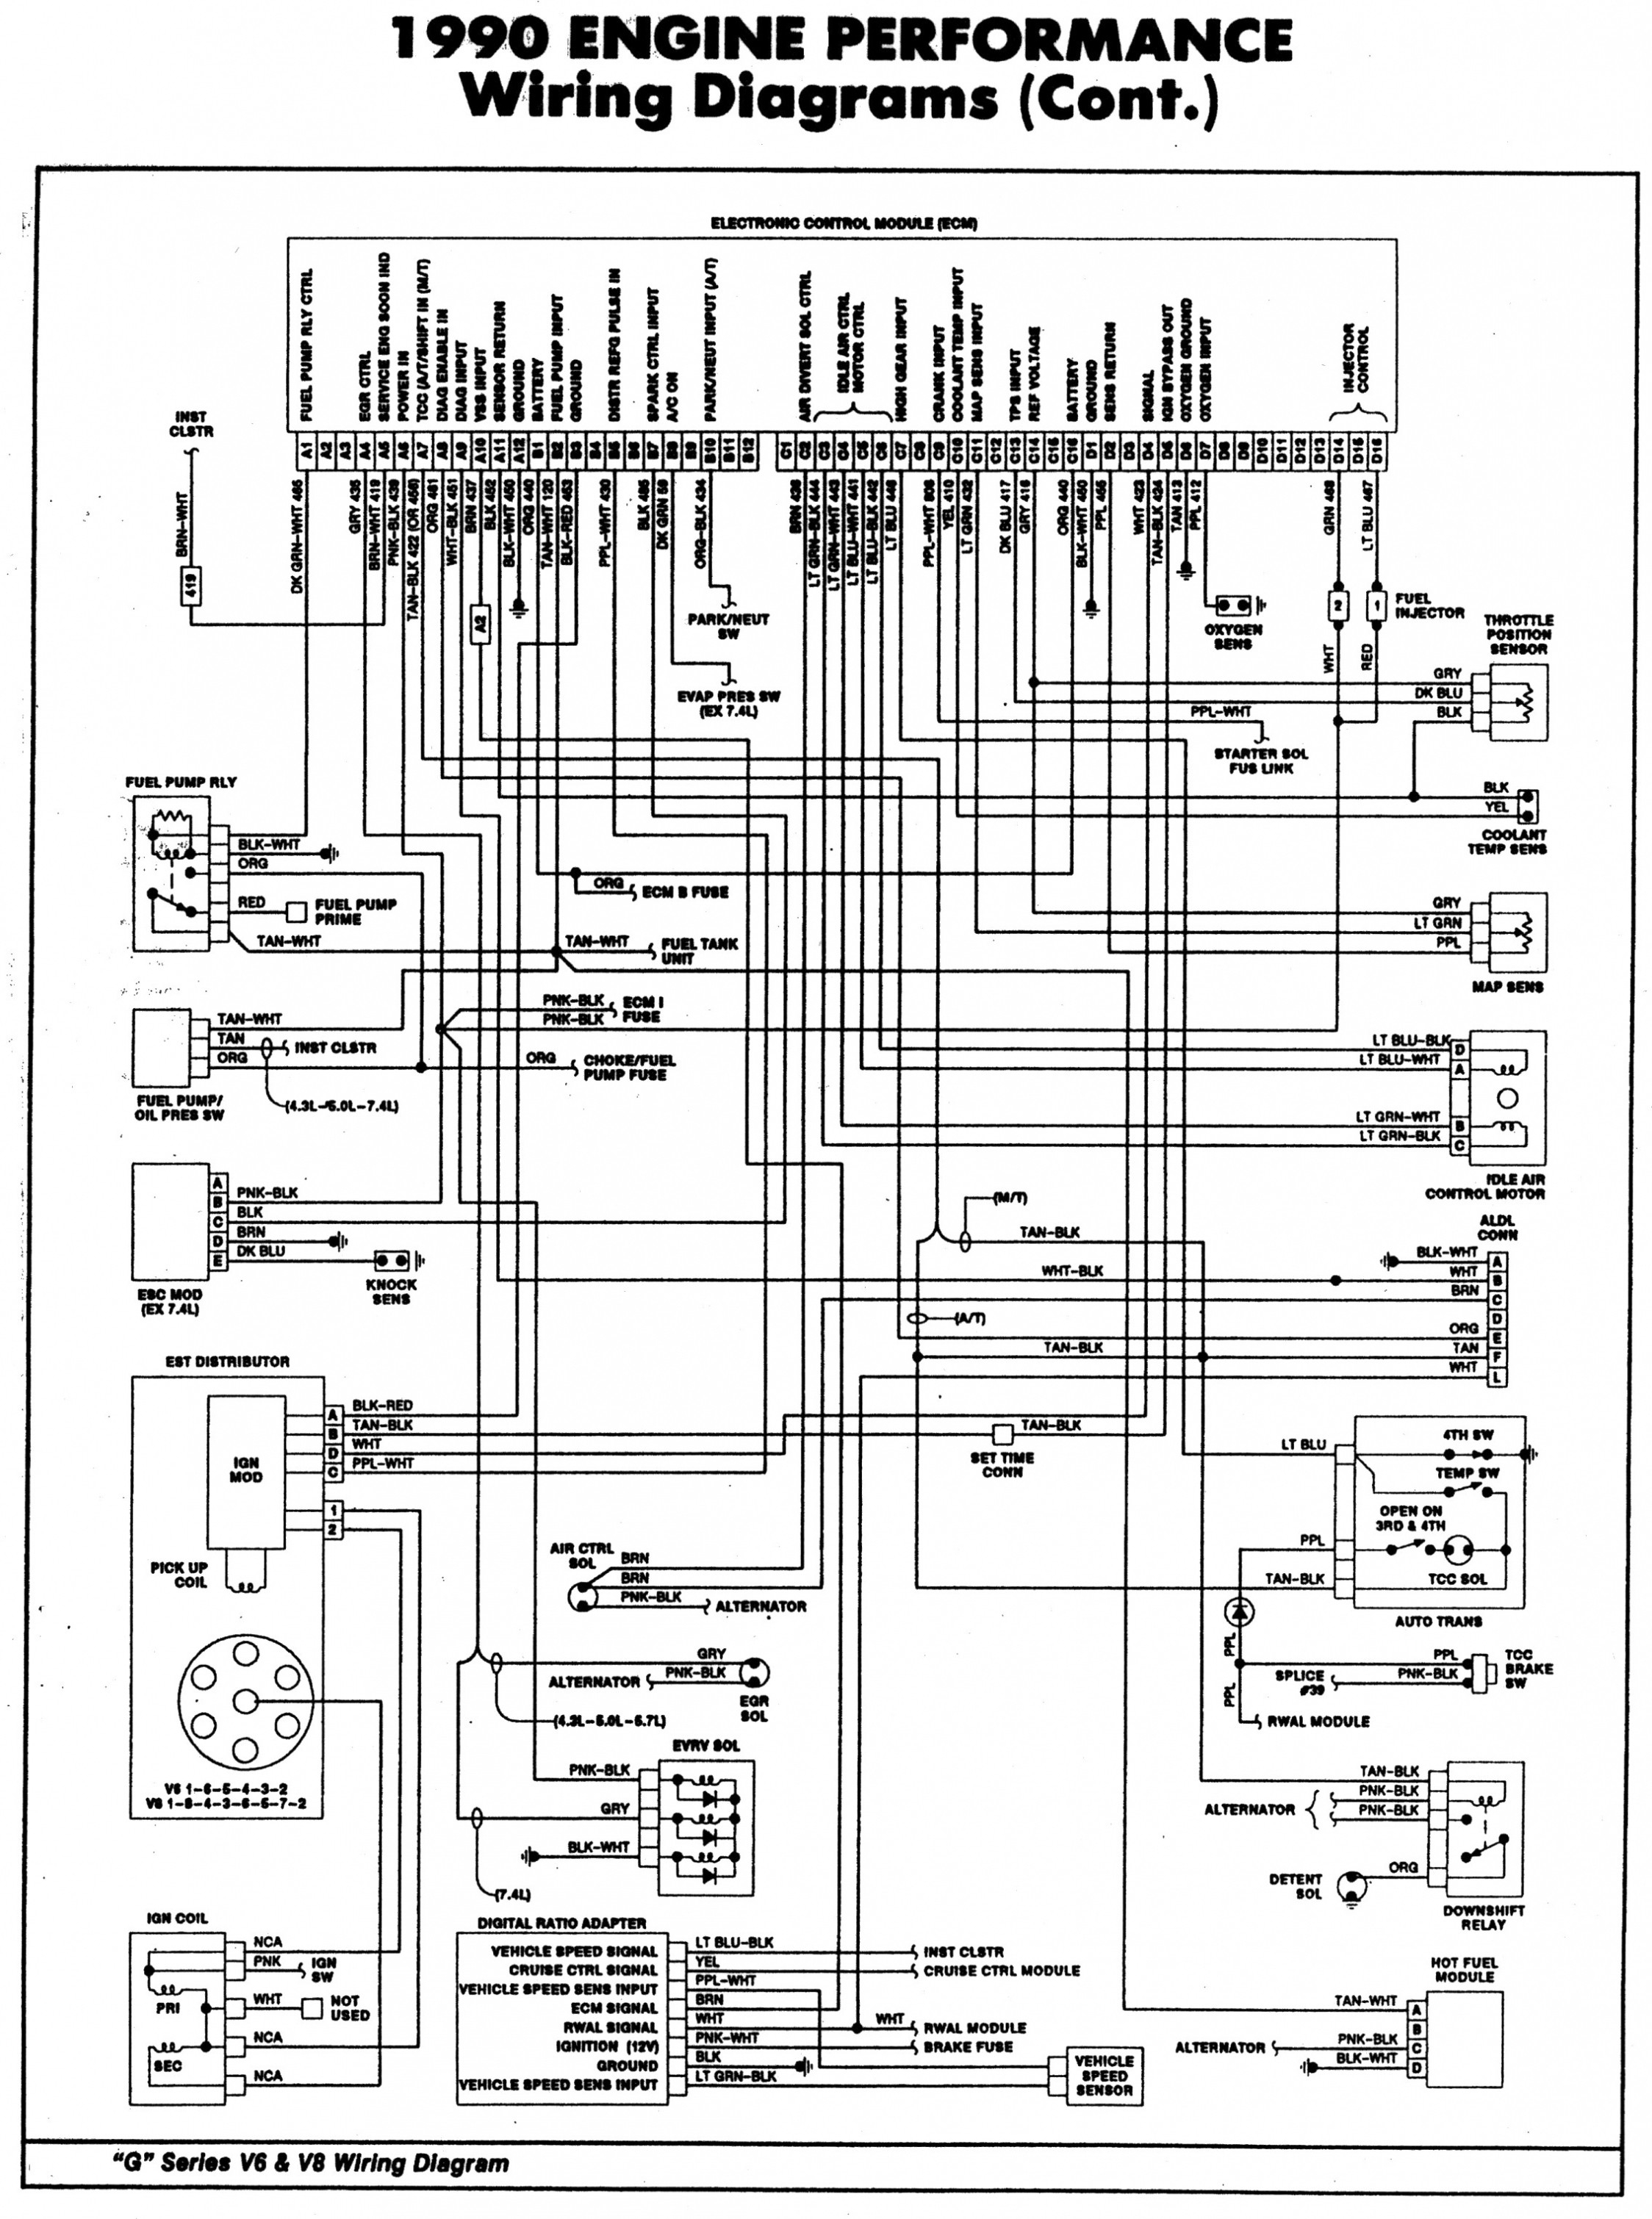 1994 Chevy Truck Brake Light Wiring Diagram Best Of Chevy Wiring - 1994 Chevy Truck Brake Light Wiring Diagram